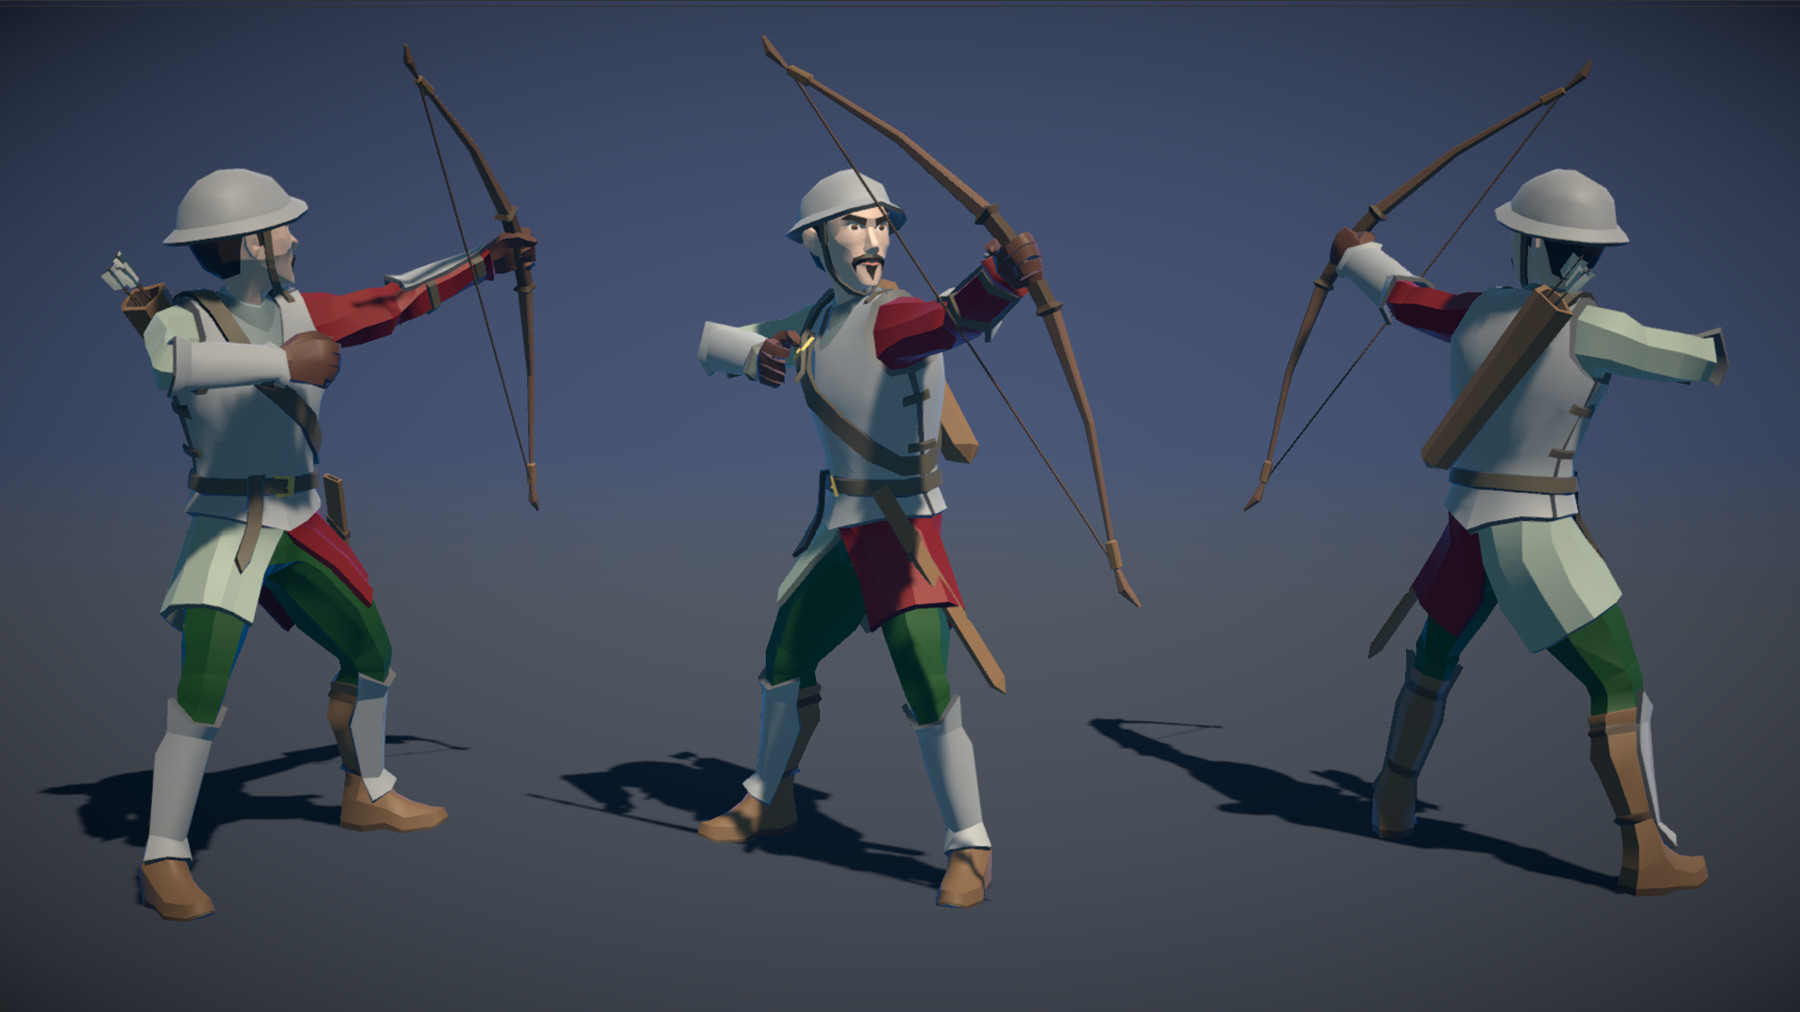 Pt medieval lowpoly characters archer 03